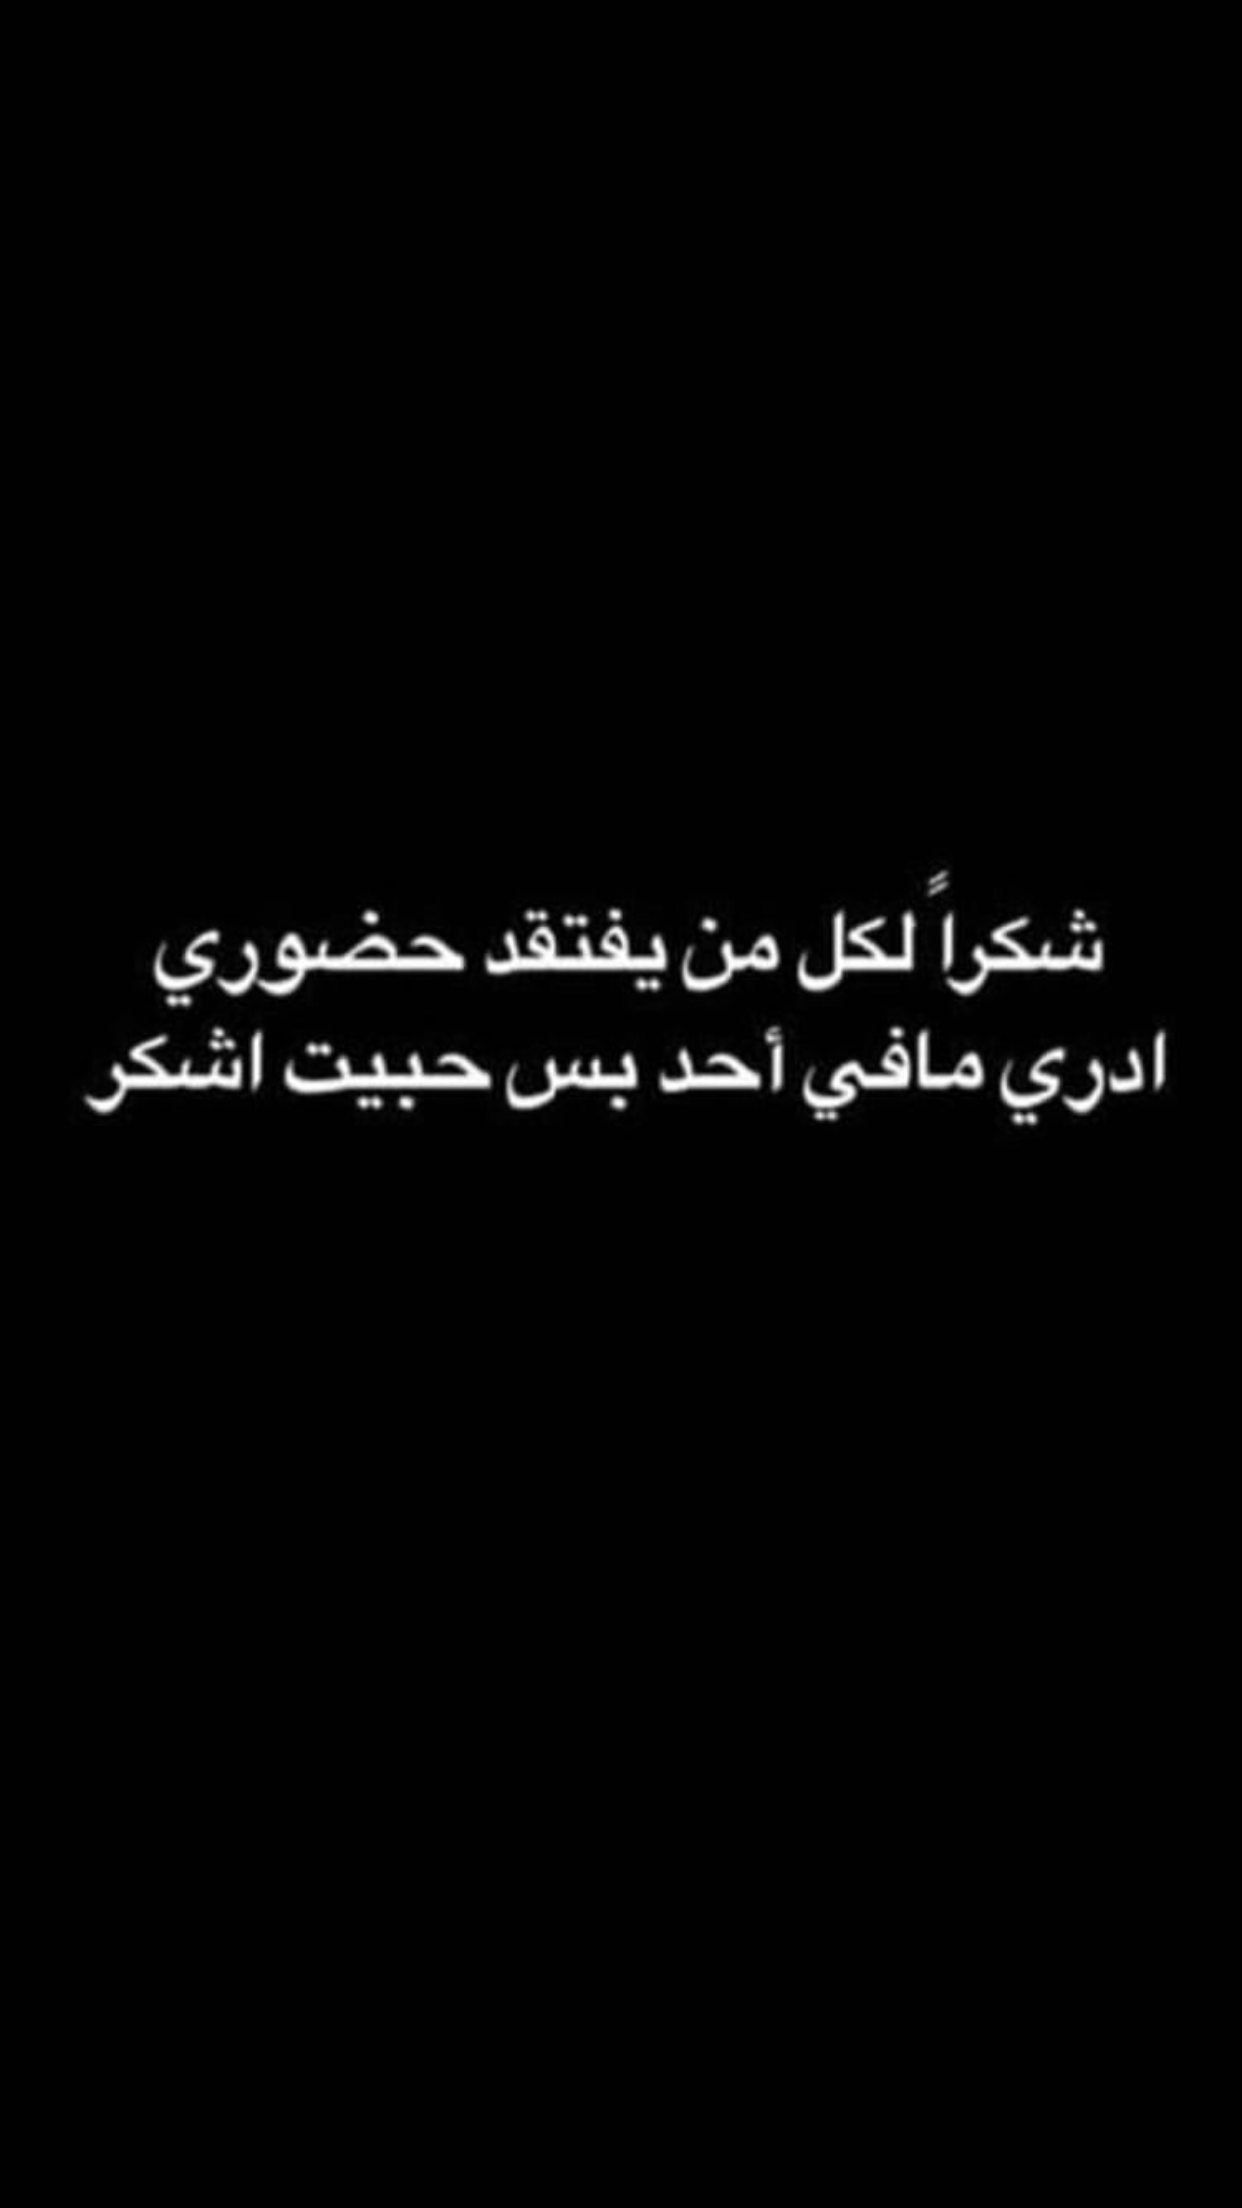 Pin By He Ba98 On فعاليات ميمز Laughing Quotes Funny Quotes Love Smile Quotes